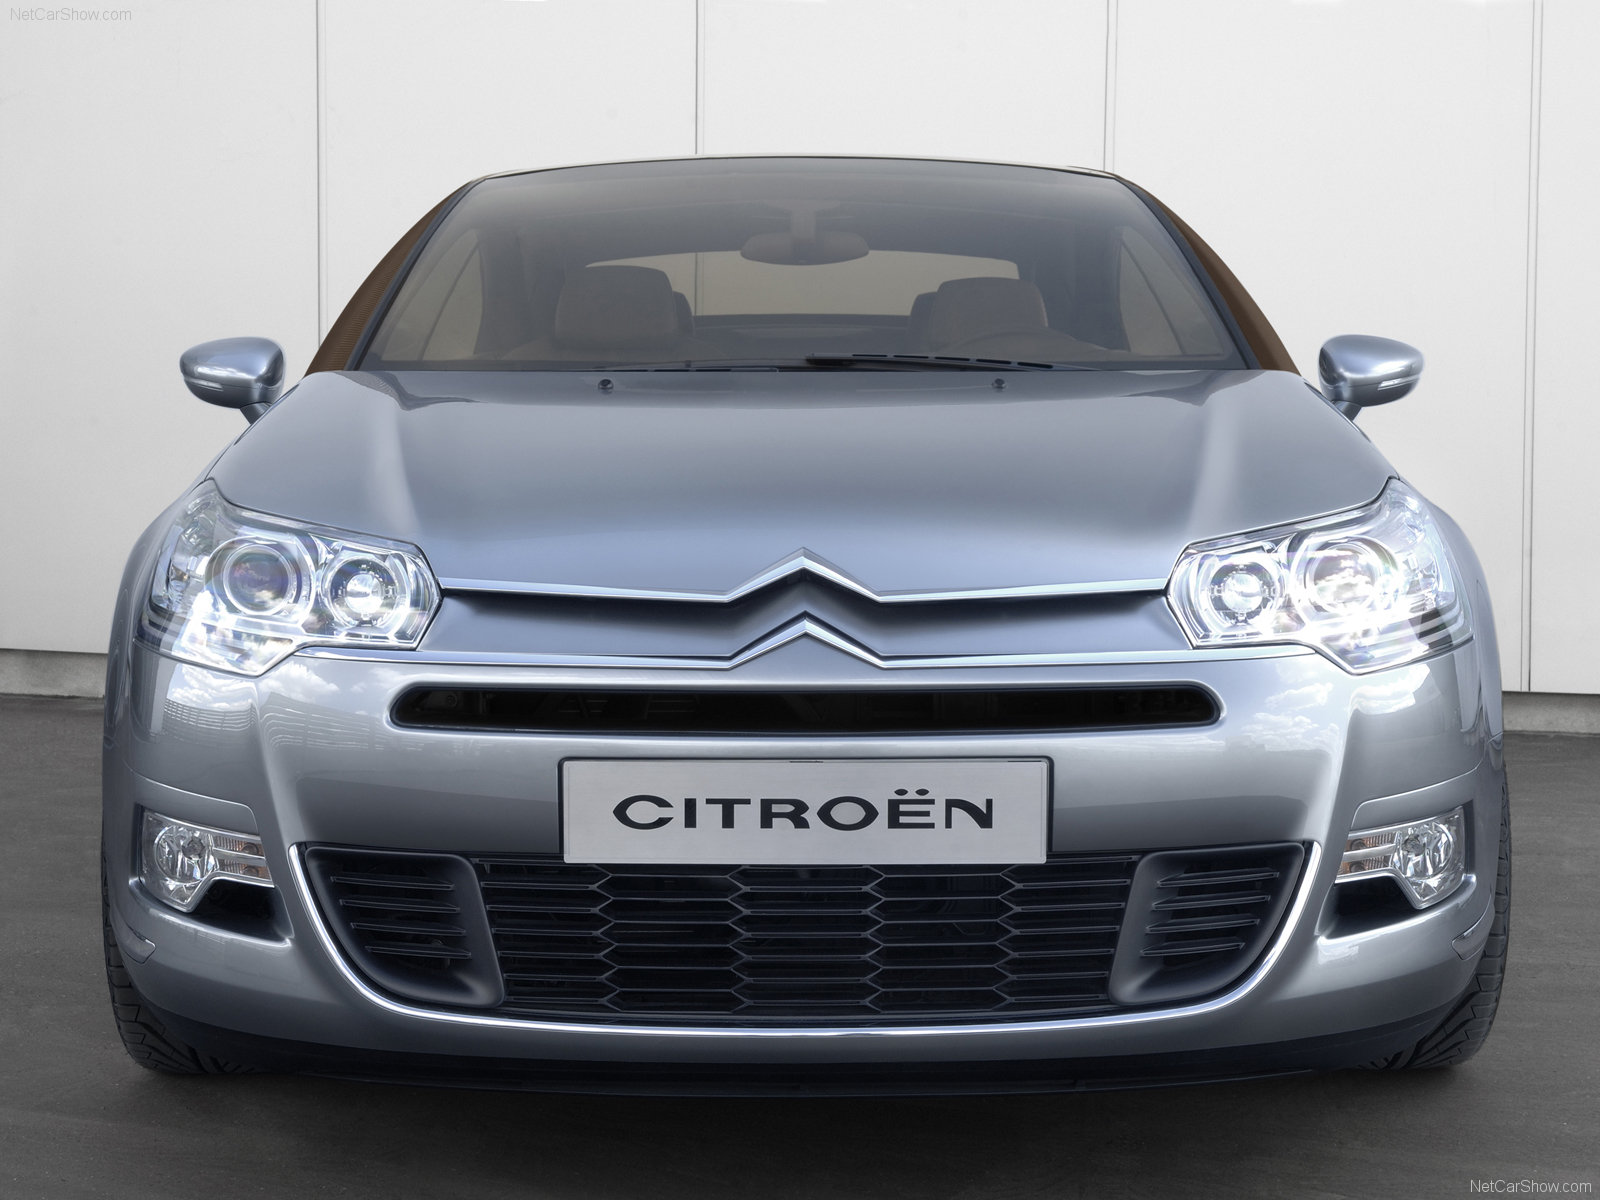 citroen c5 airscape photos photogallery with 11 pics. Black Bedroom Furniture Sets. Home Design Ideas